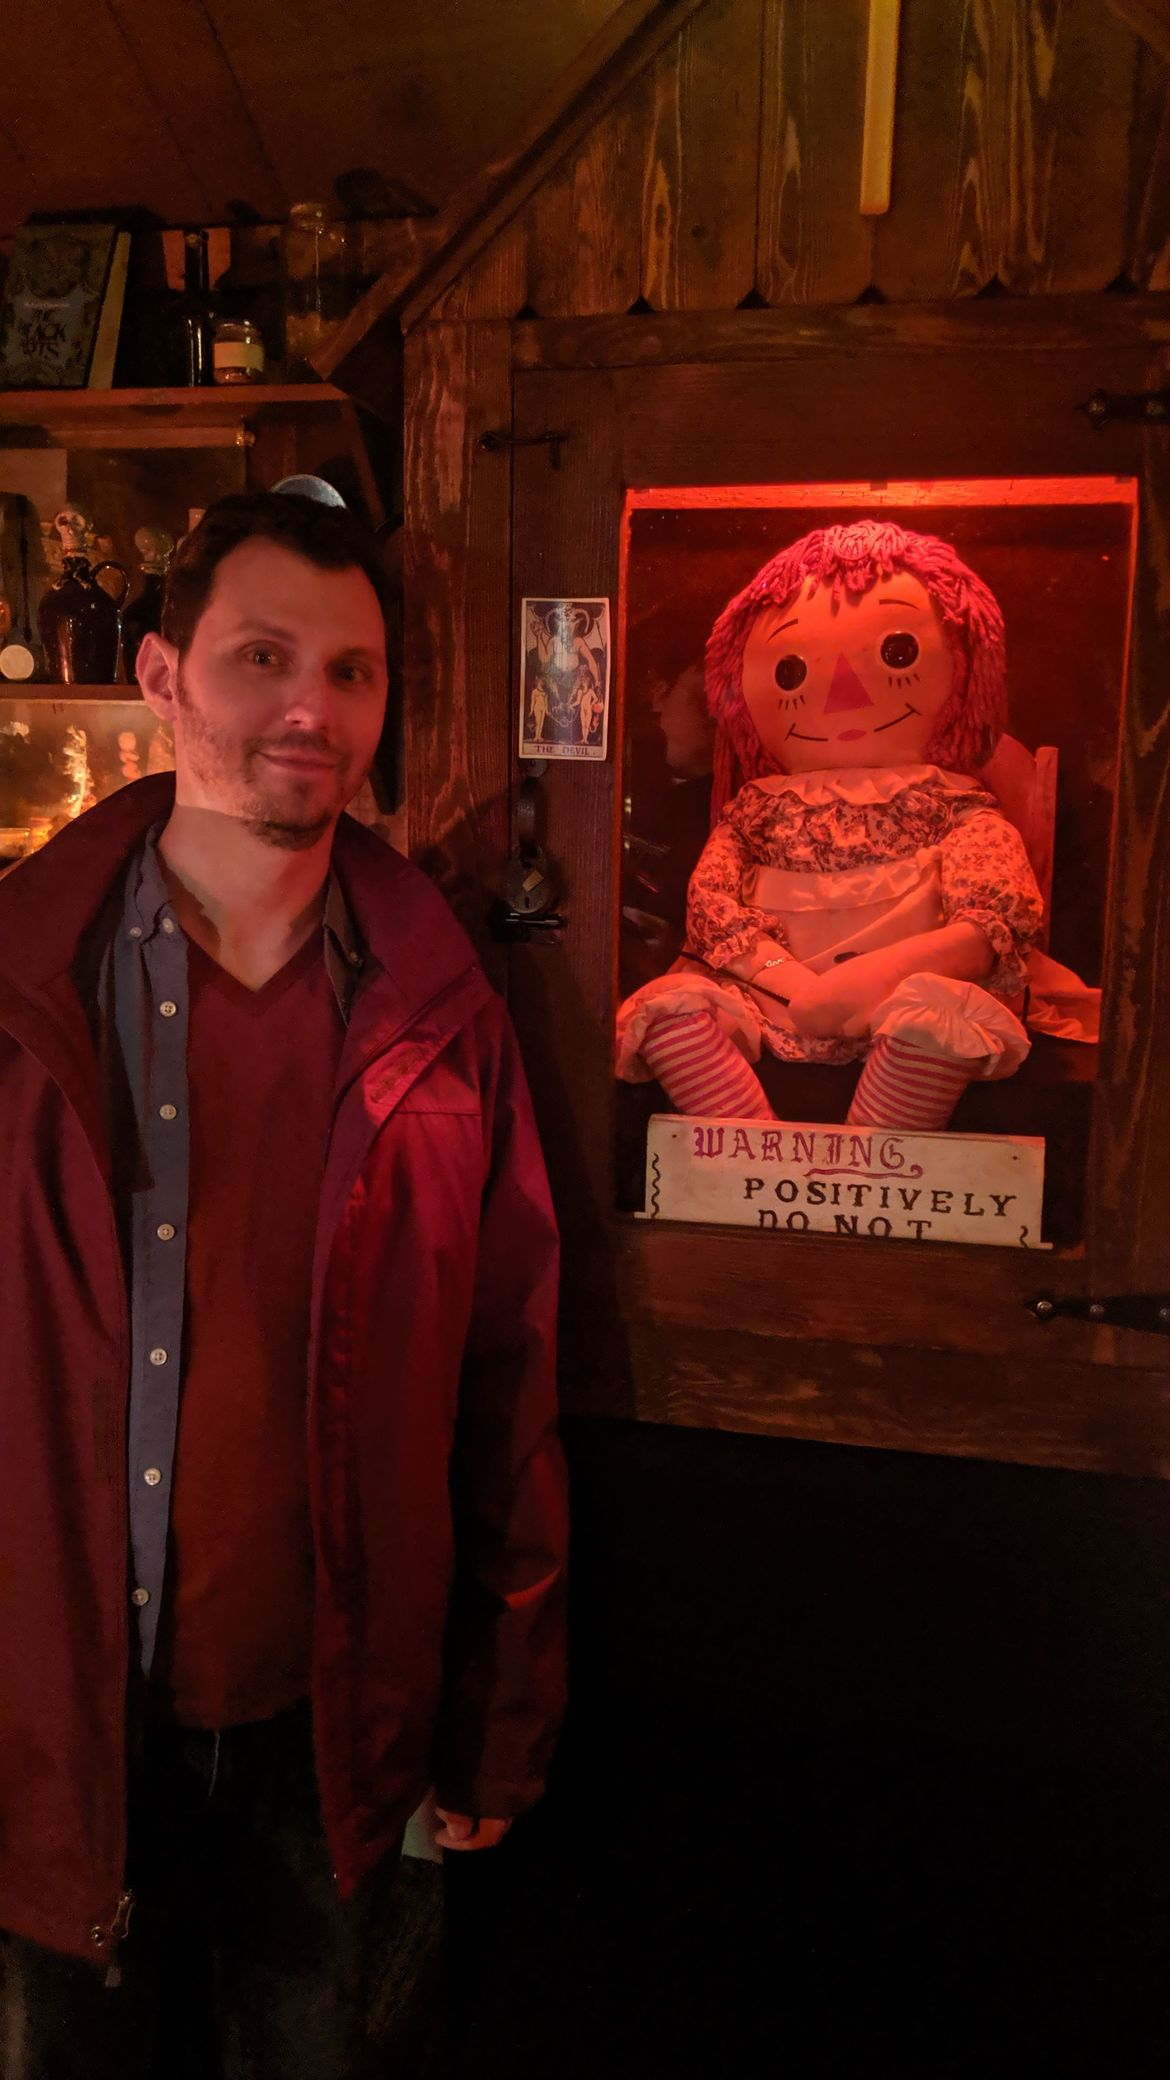 The Real Annabelle doll, straight from Ed and Lorraine Warren's